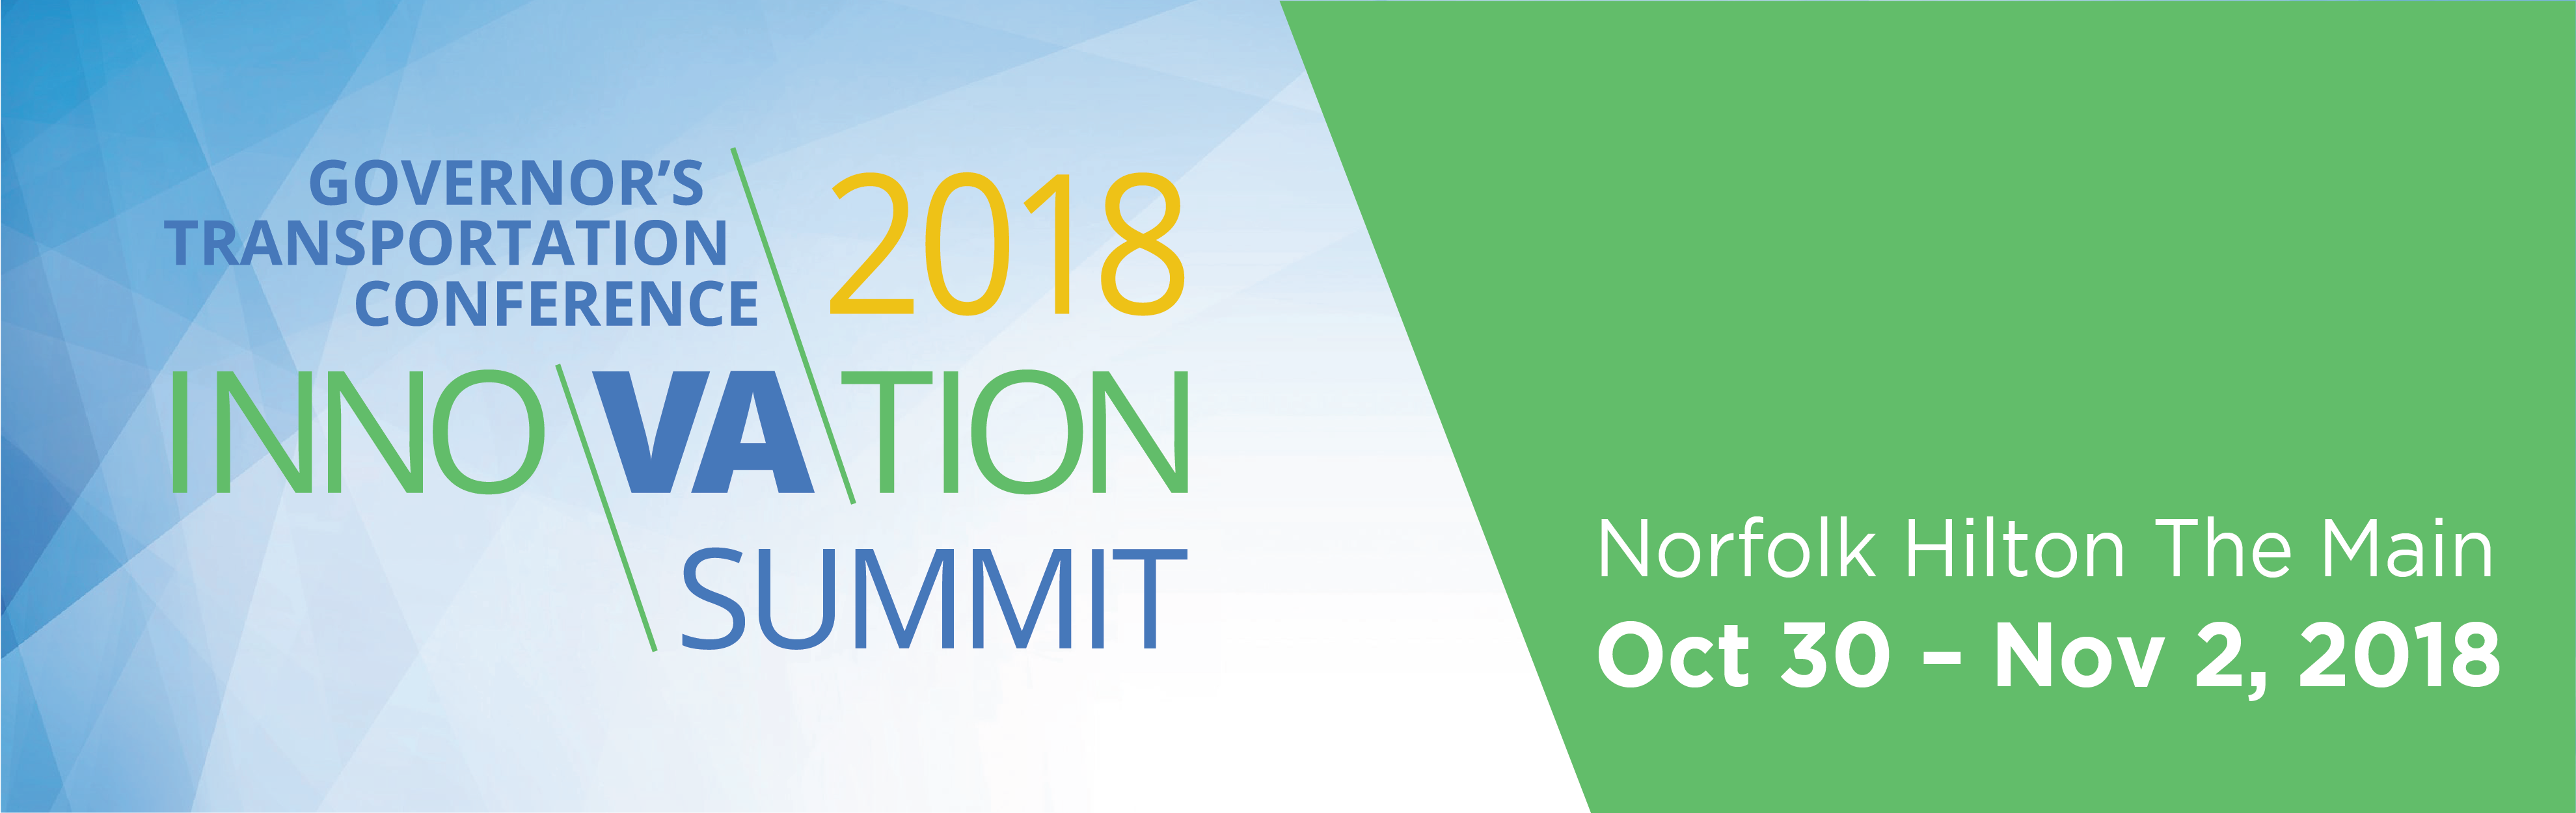 Governor's Transportation Conference/2018 Innovation Summit